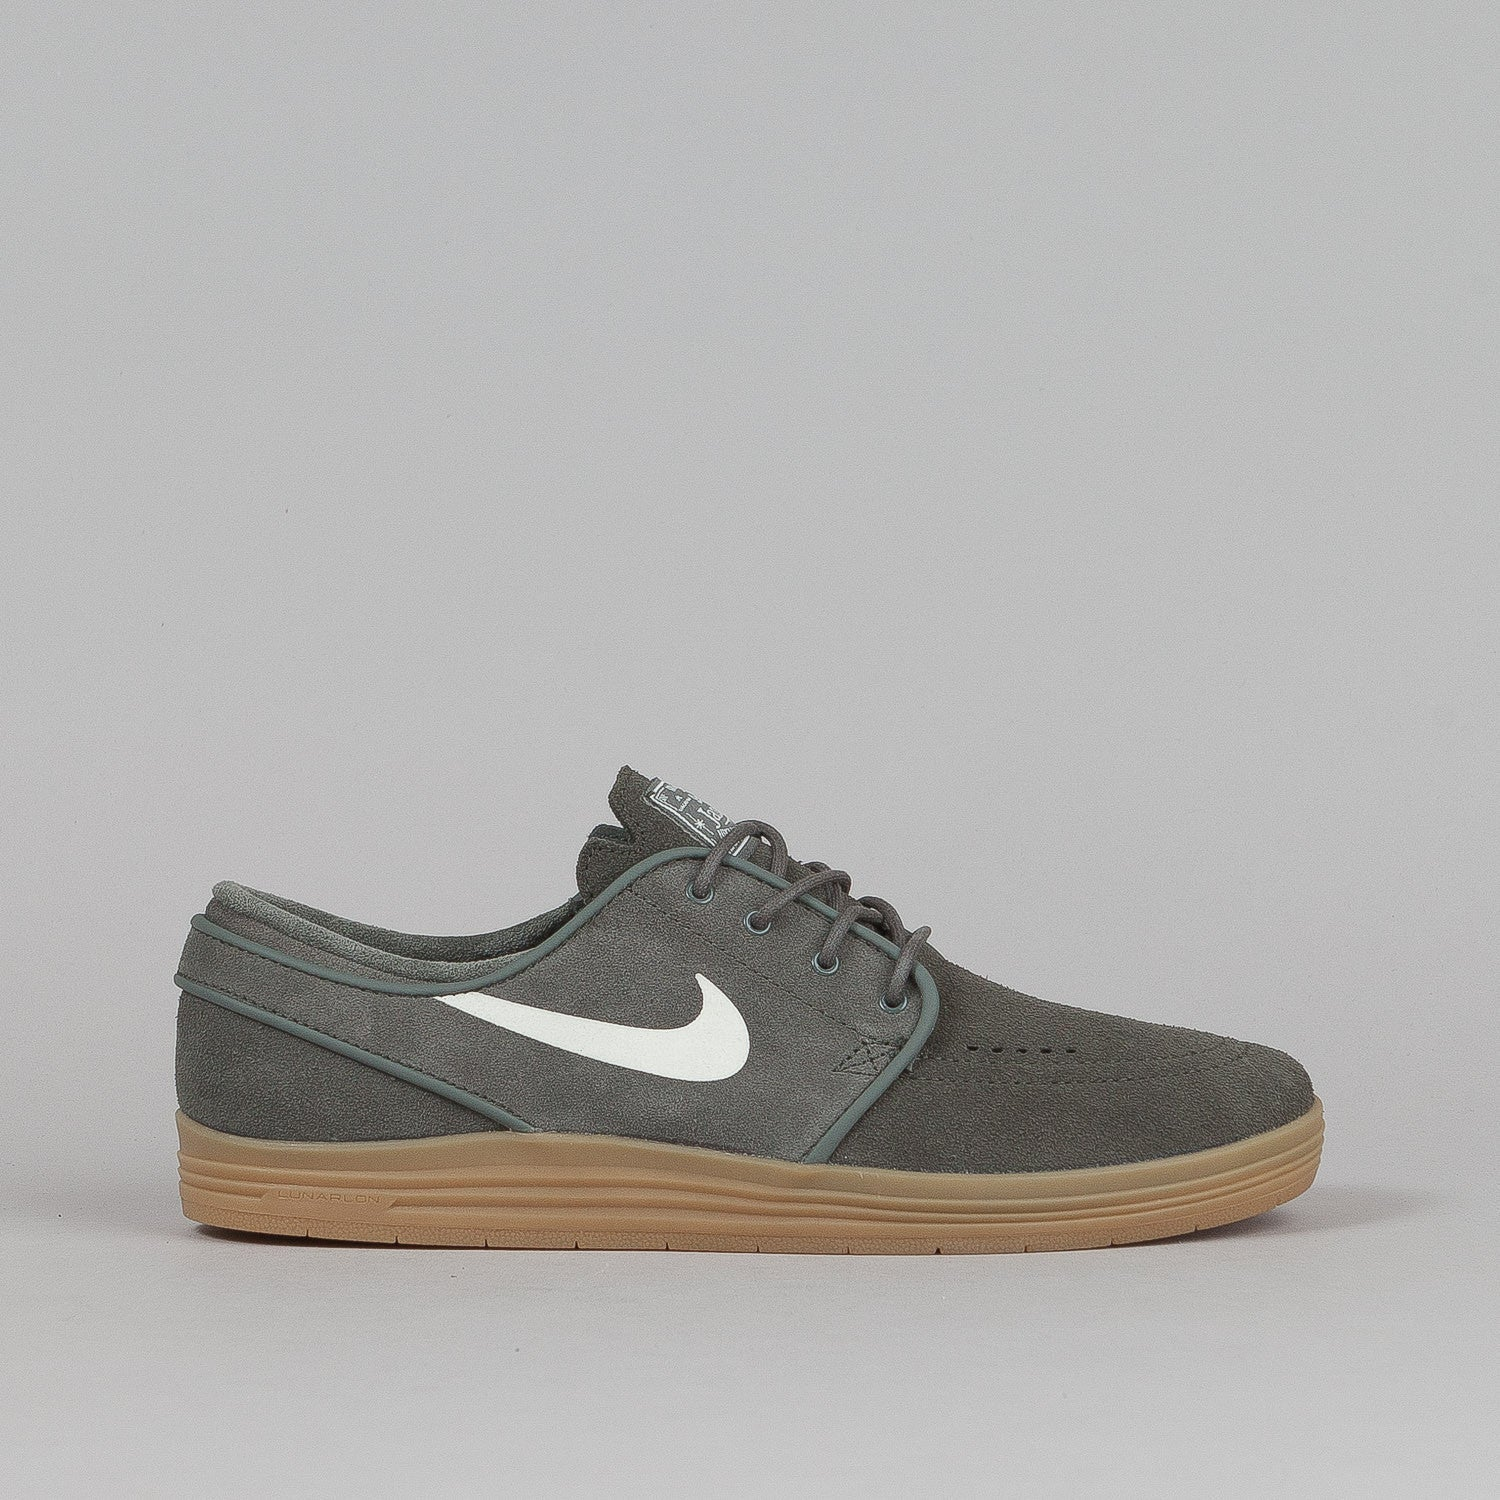 Nike SB Lunar Stefan Janoski Shoes River Rock / Sail